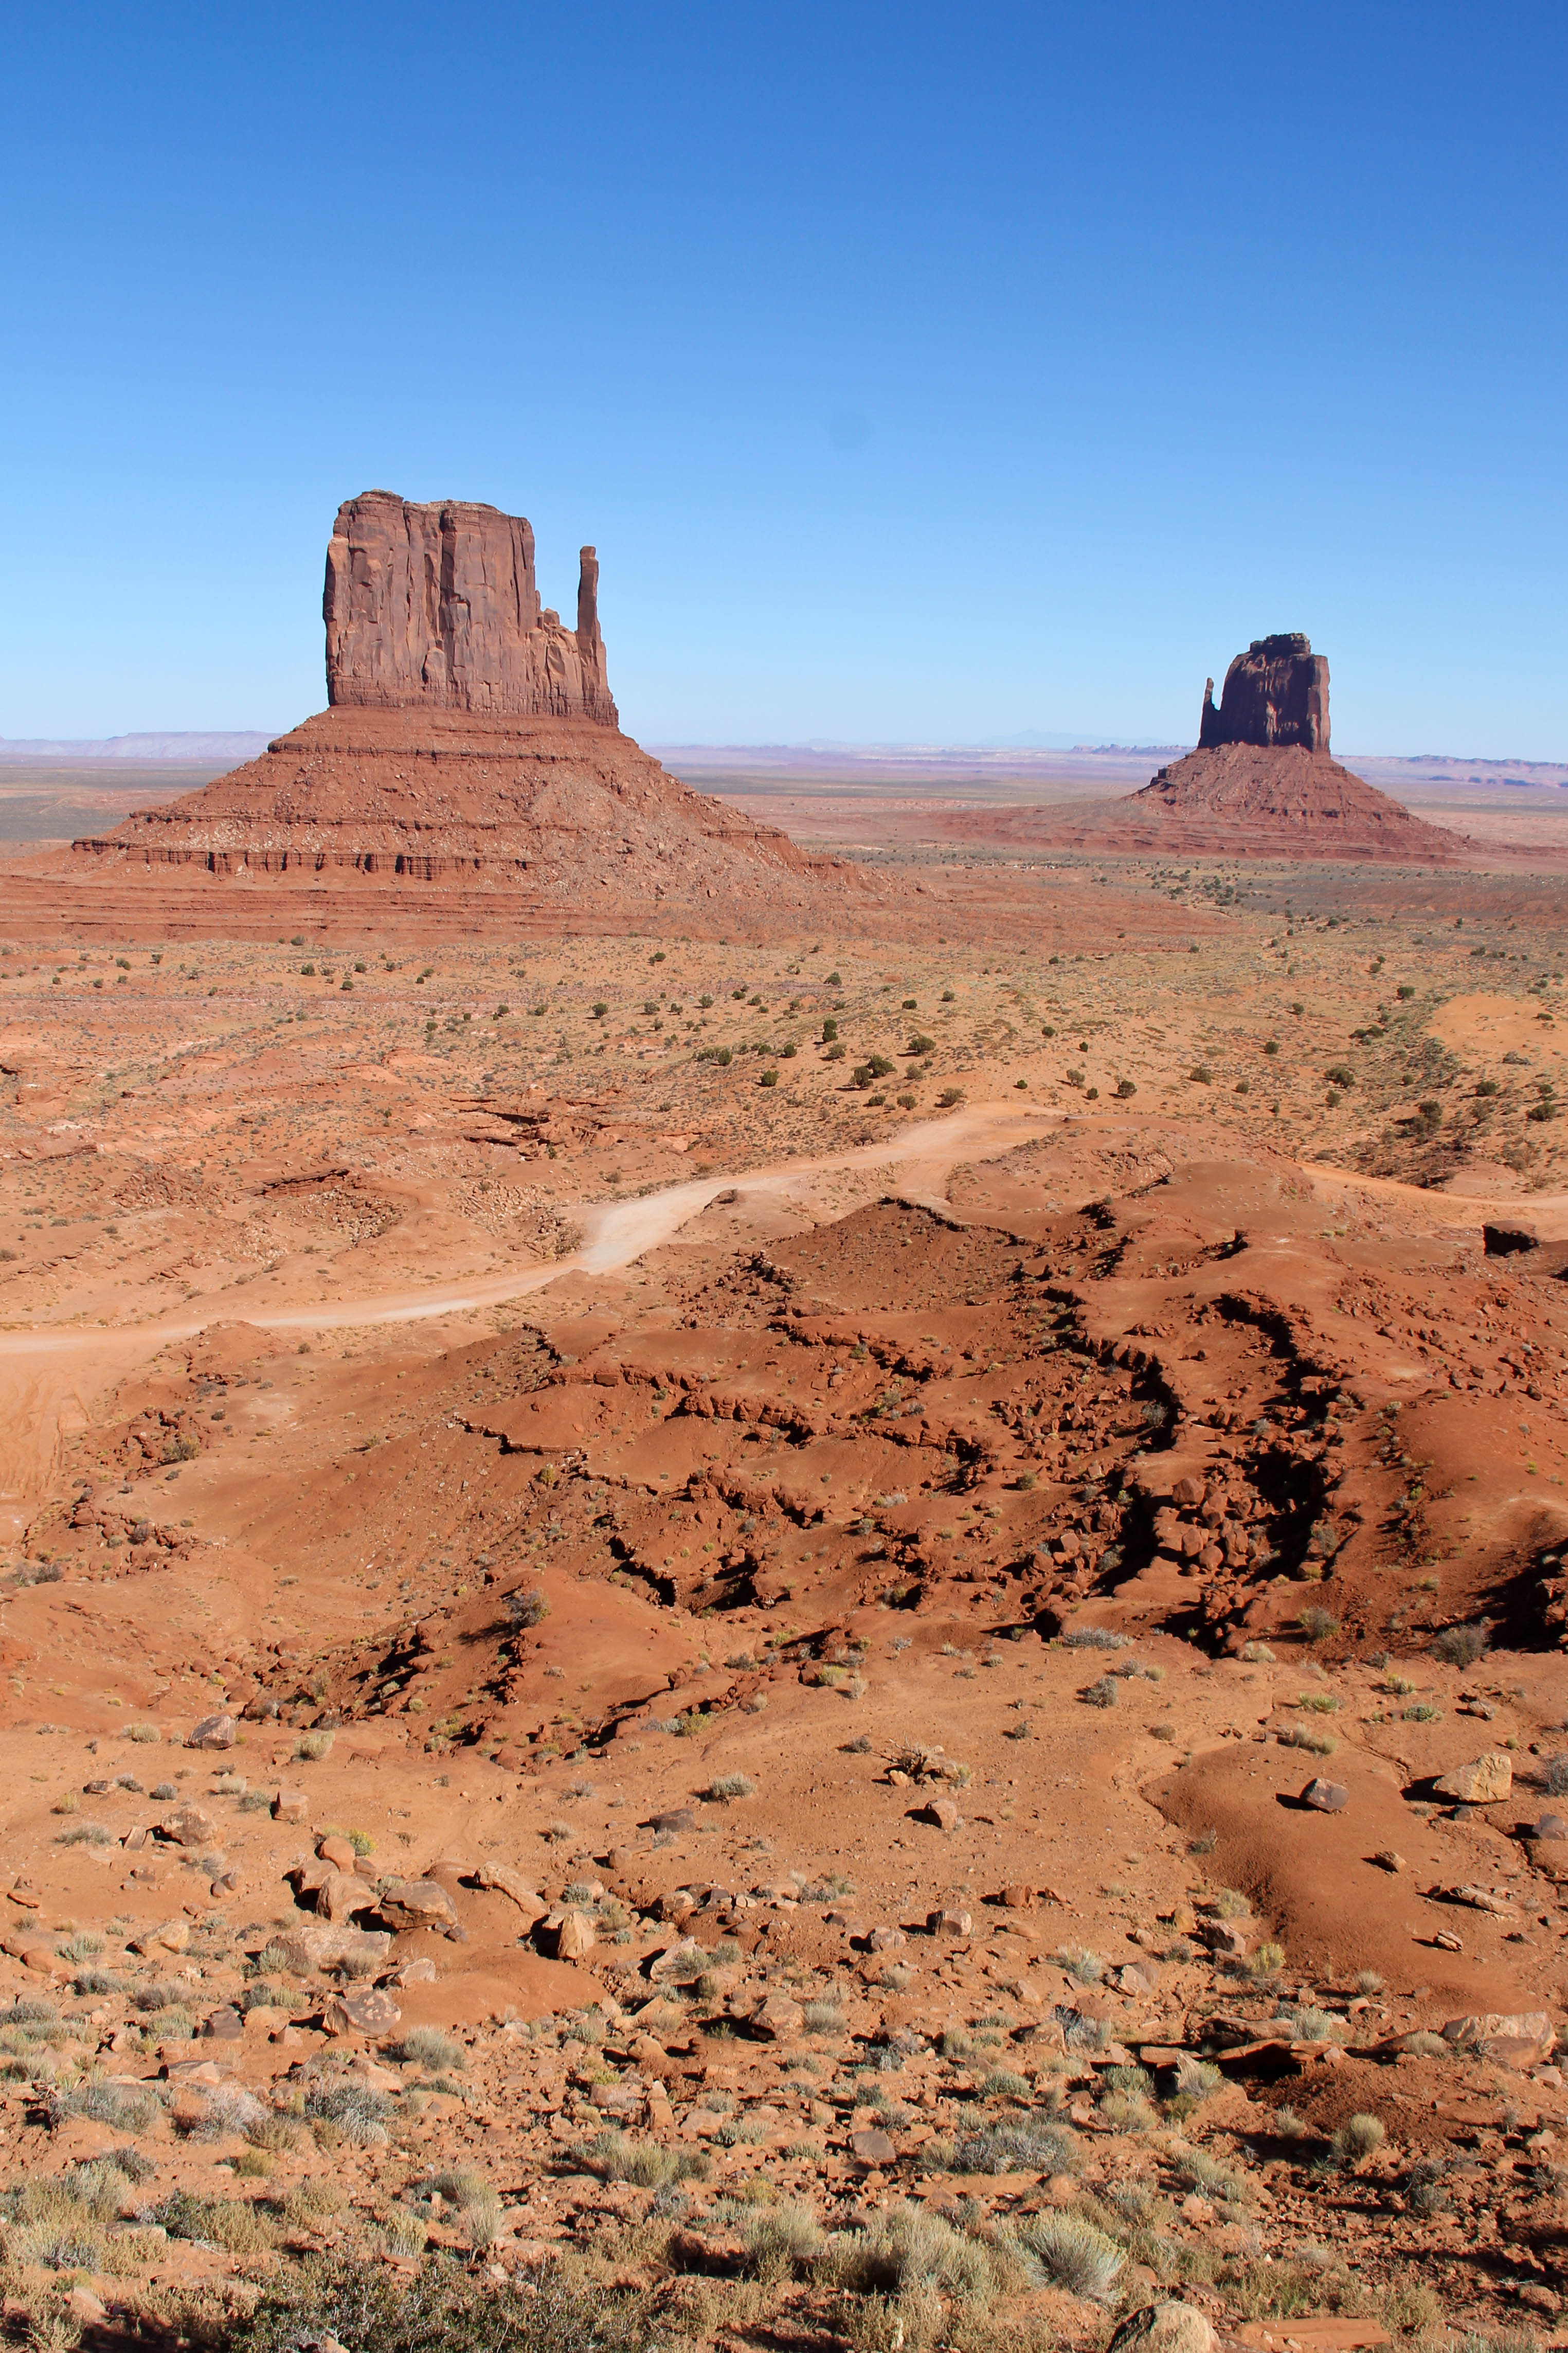 MONUMENT VALLEY / ARIZONA